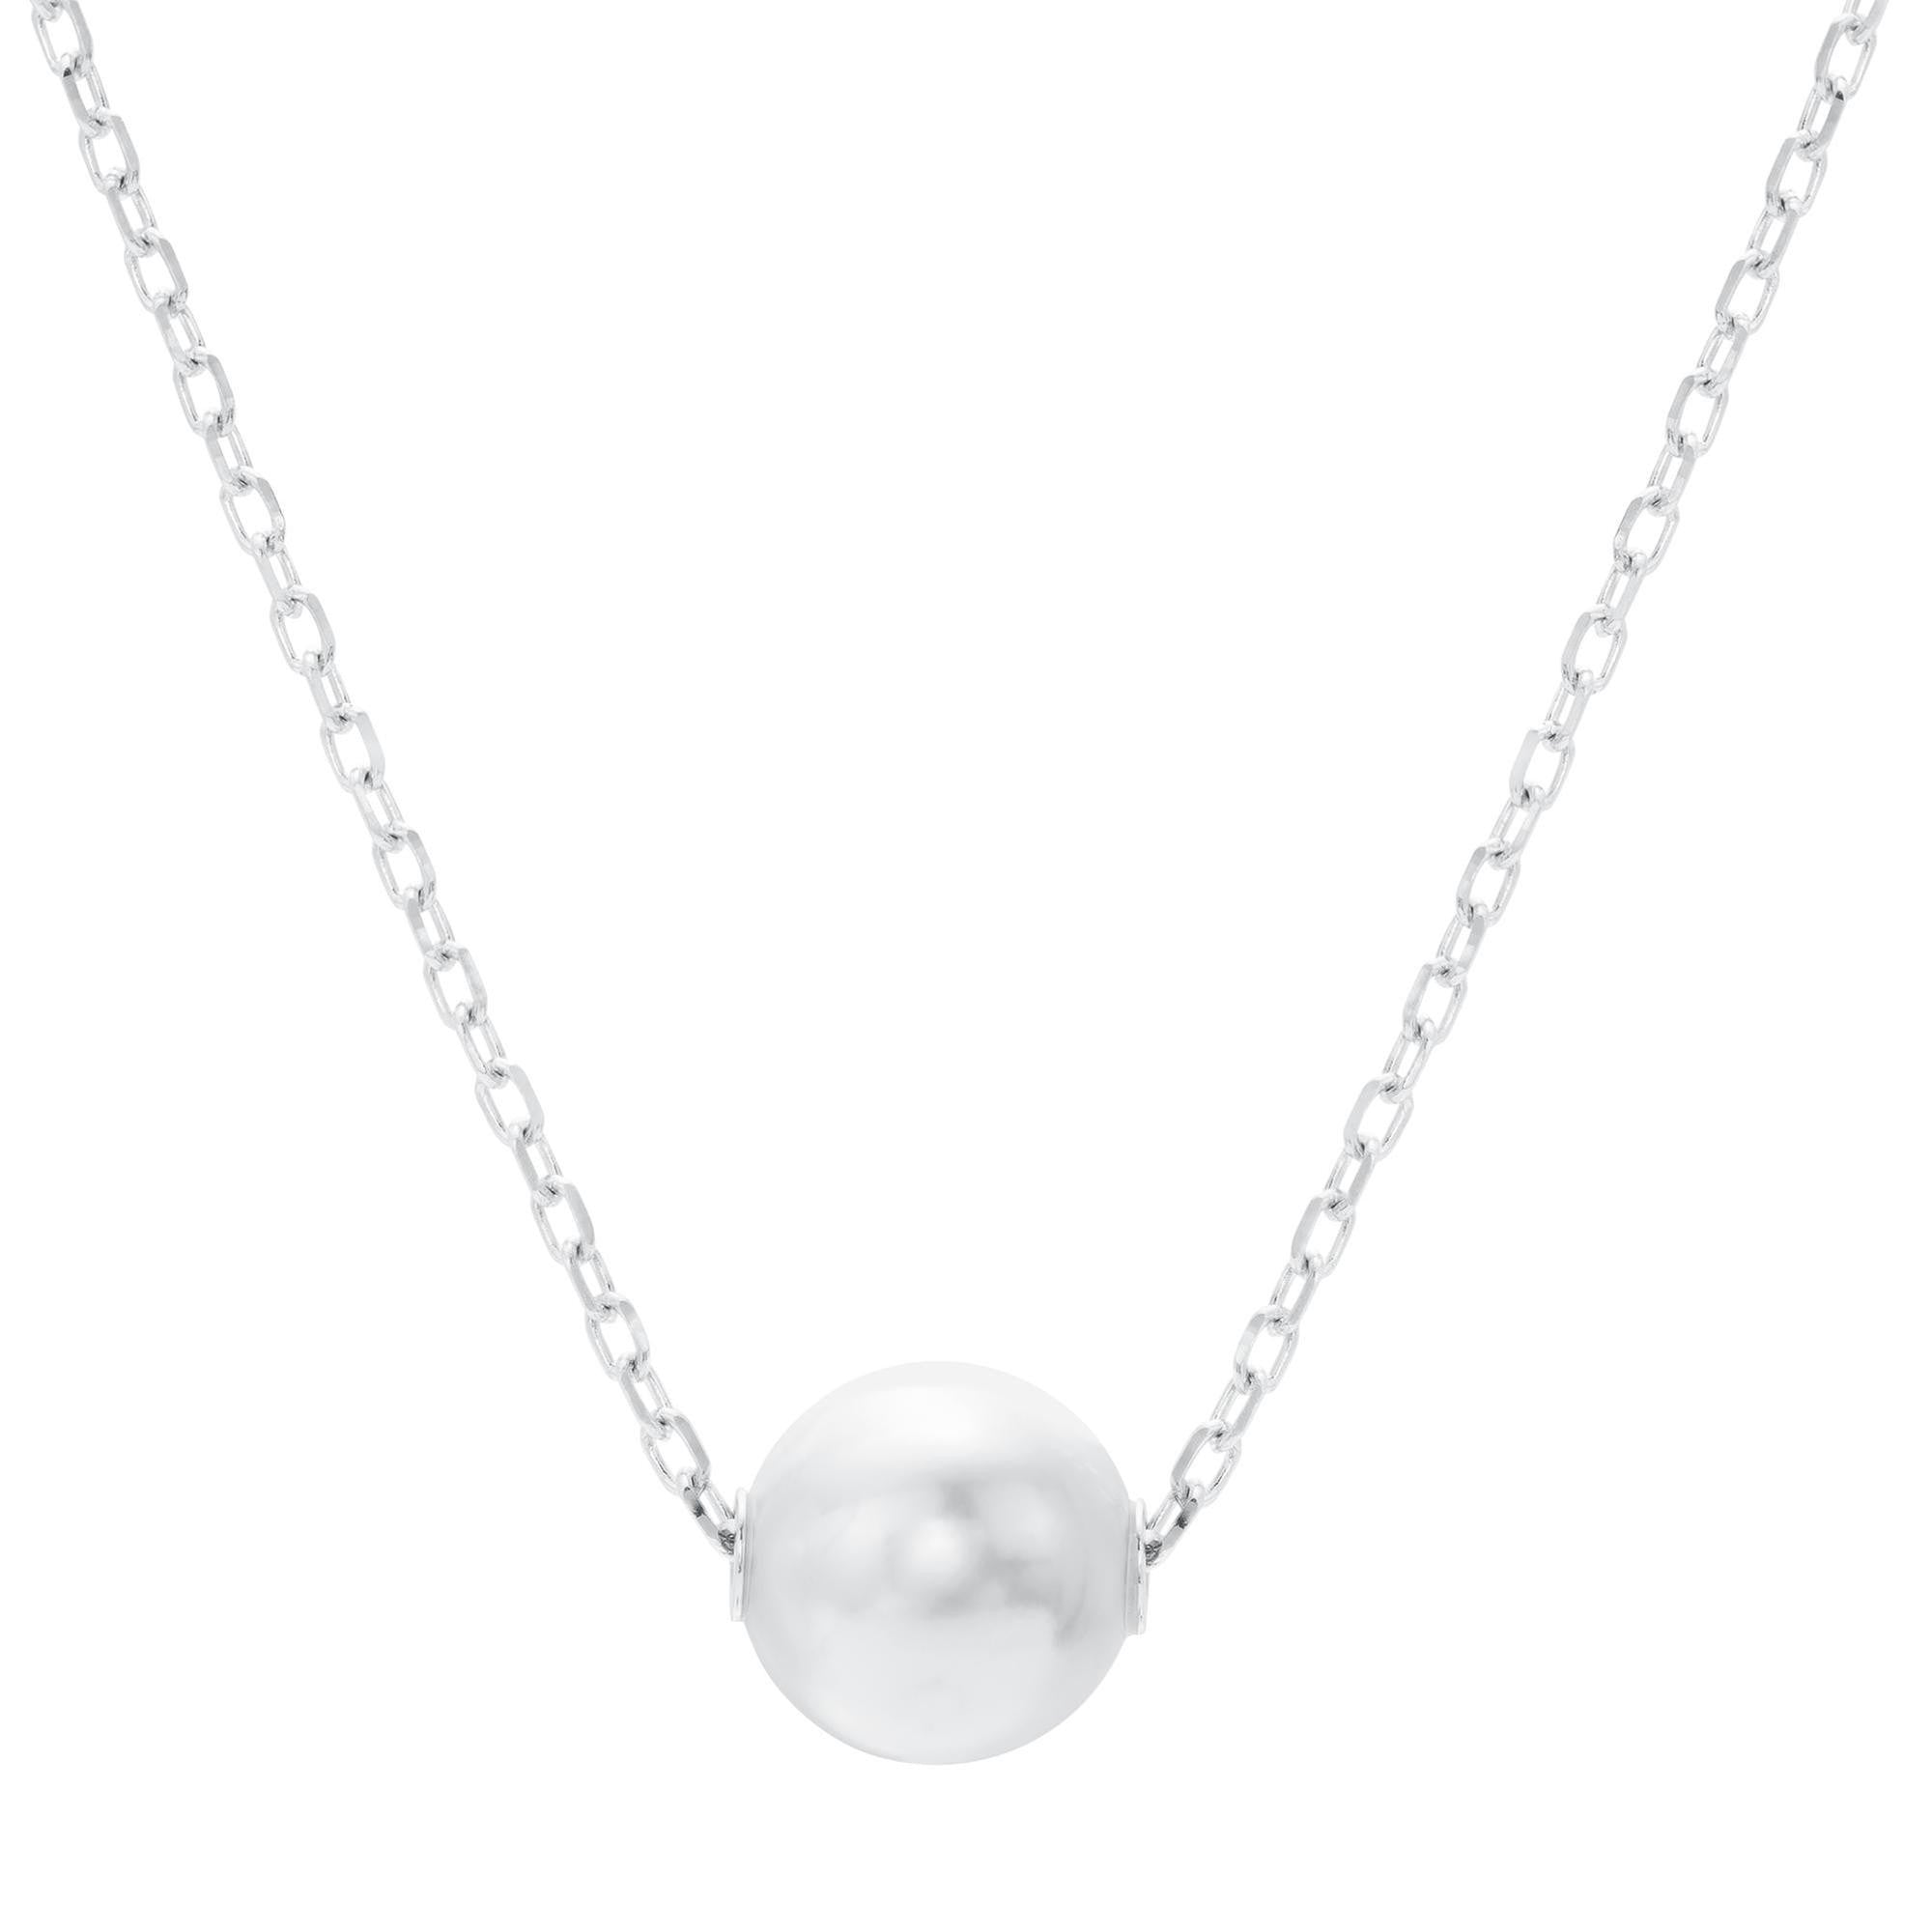 mikimoto single miller products brent pearl necklace pendant l